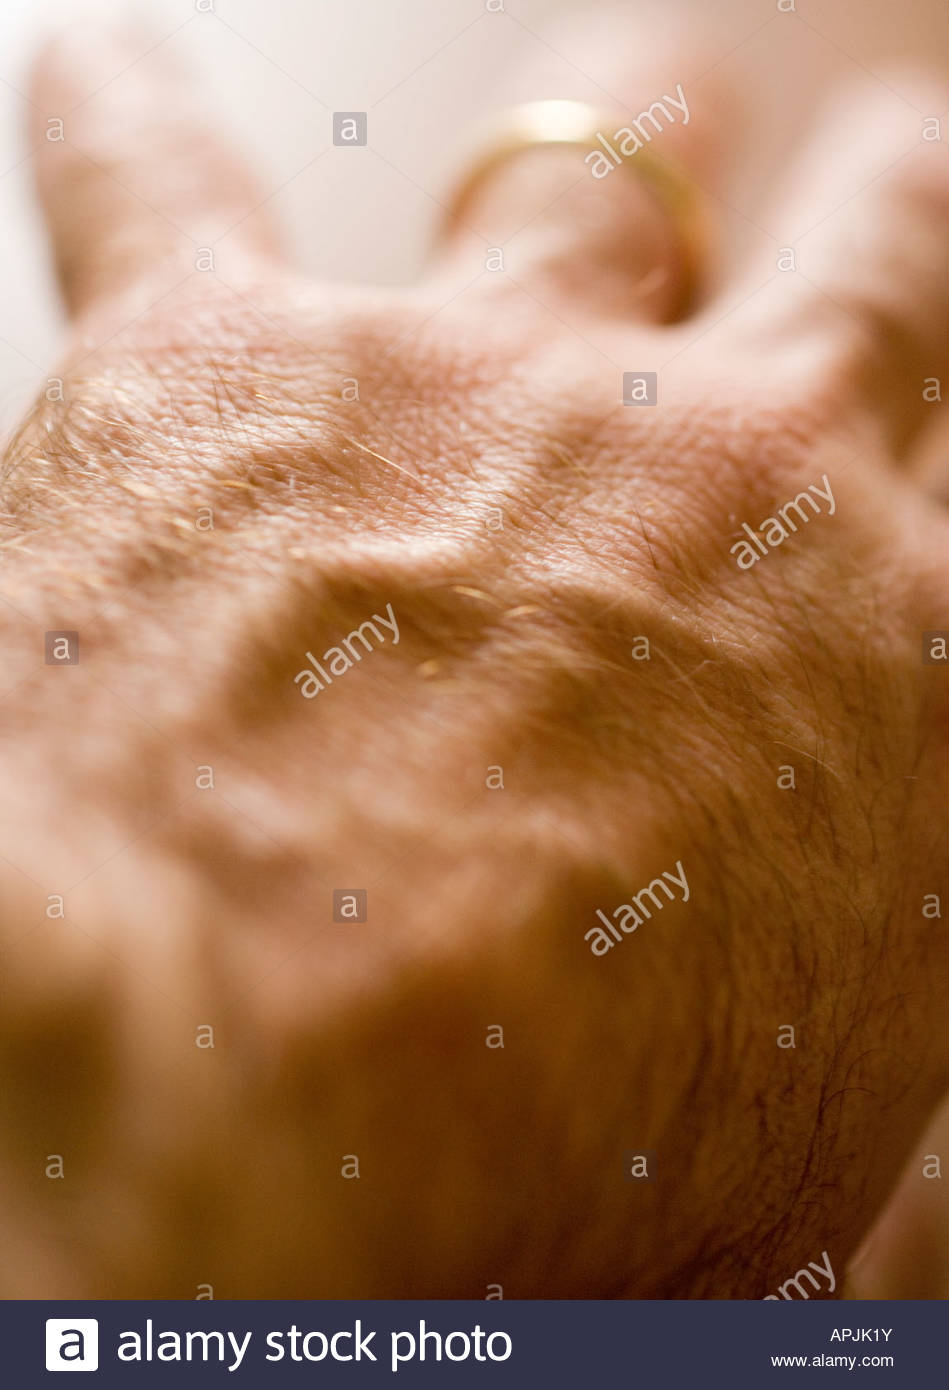 Back of male hand with veins showing - Stock Image